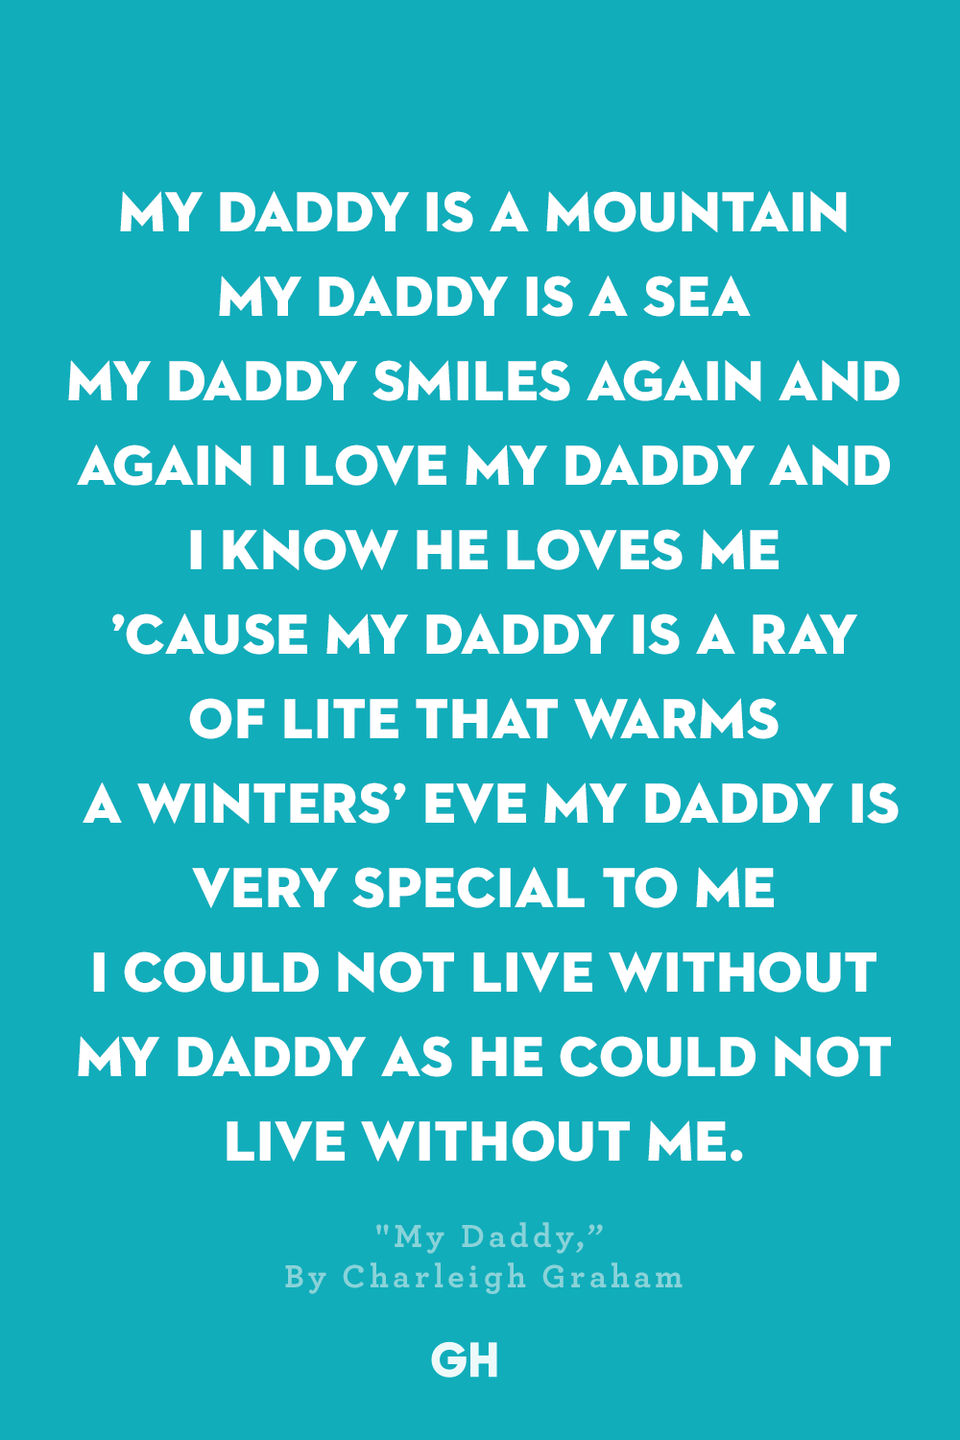 <p>My Daddy is a mountain</p><p>My Daddy is a sea</p><p>My Daddy smiles again and again</p><p>I love my Daddy and I know he loves me </p><p>'Cause my Daddy is a ray of light that warms a winters' eve</p><p>My daddy is very special to me</p><p>I could not live without my daddy as he could not live without me.</p>